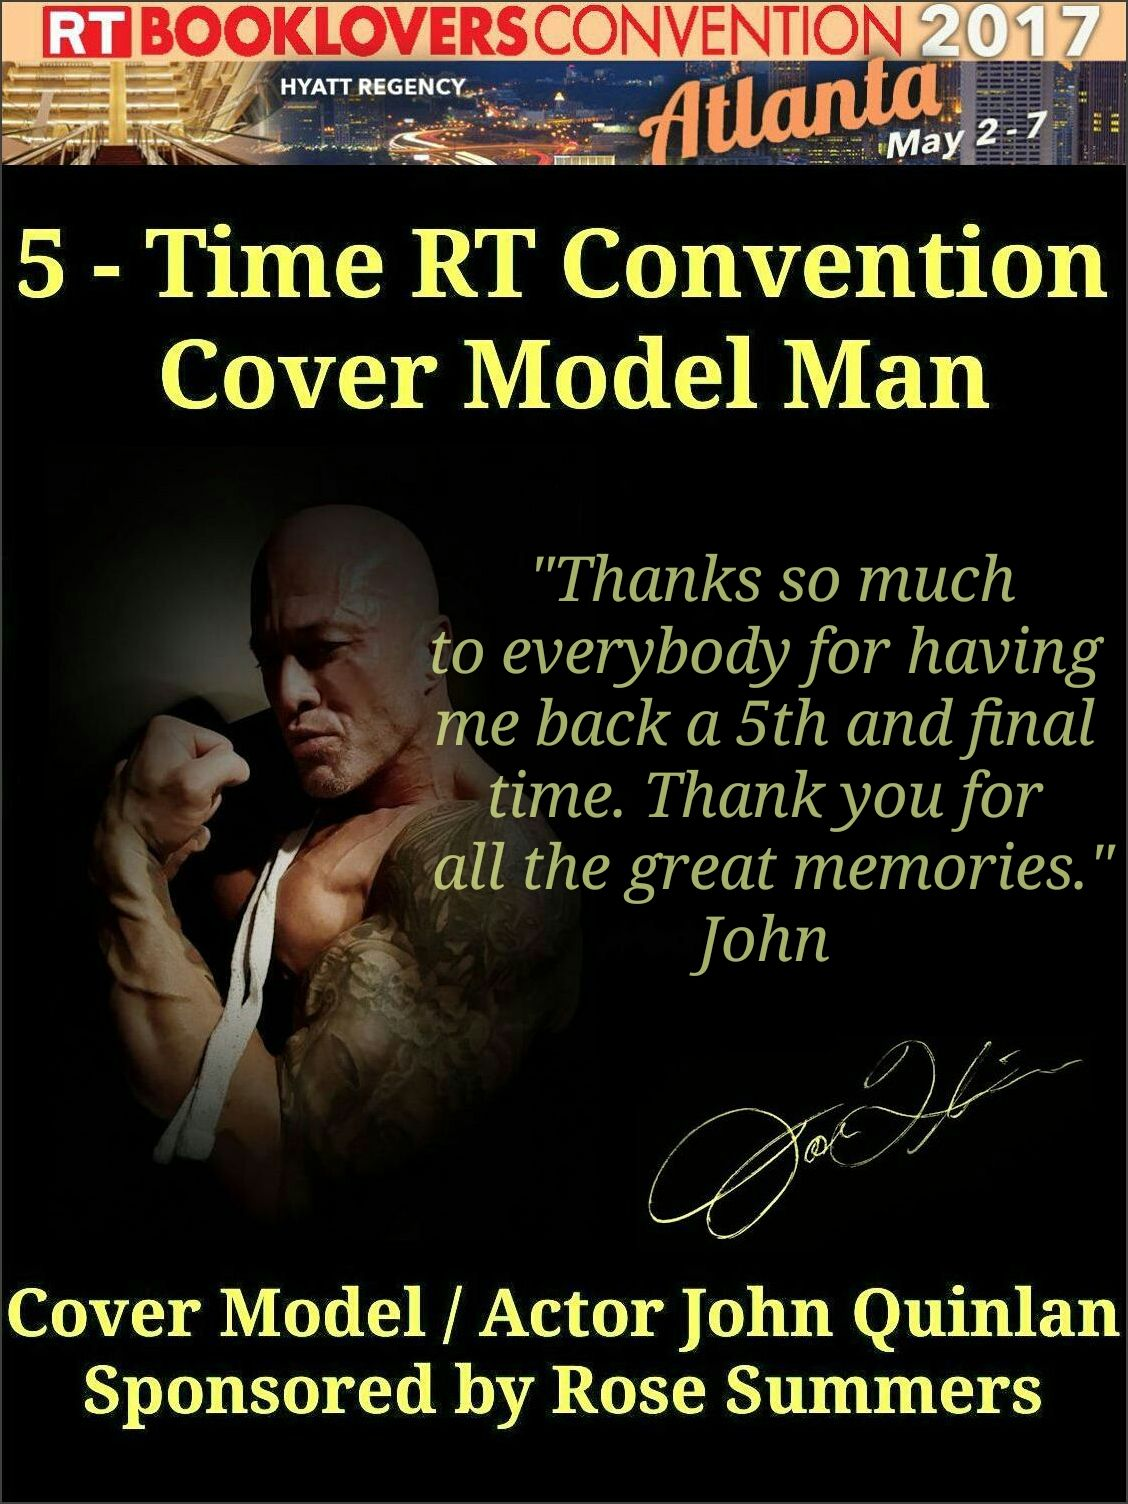 2017 RT Convention Atlanta Featured Cover Model John Joseph Quinlan by Rose Summers #JohnQuinlan